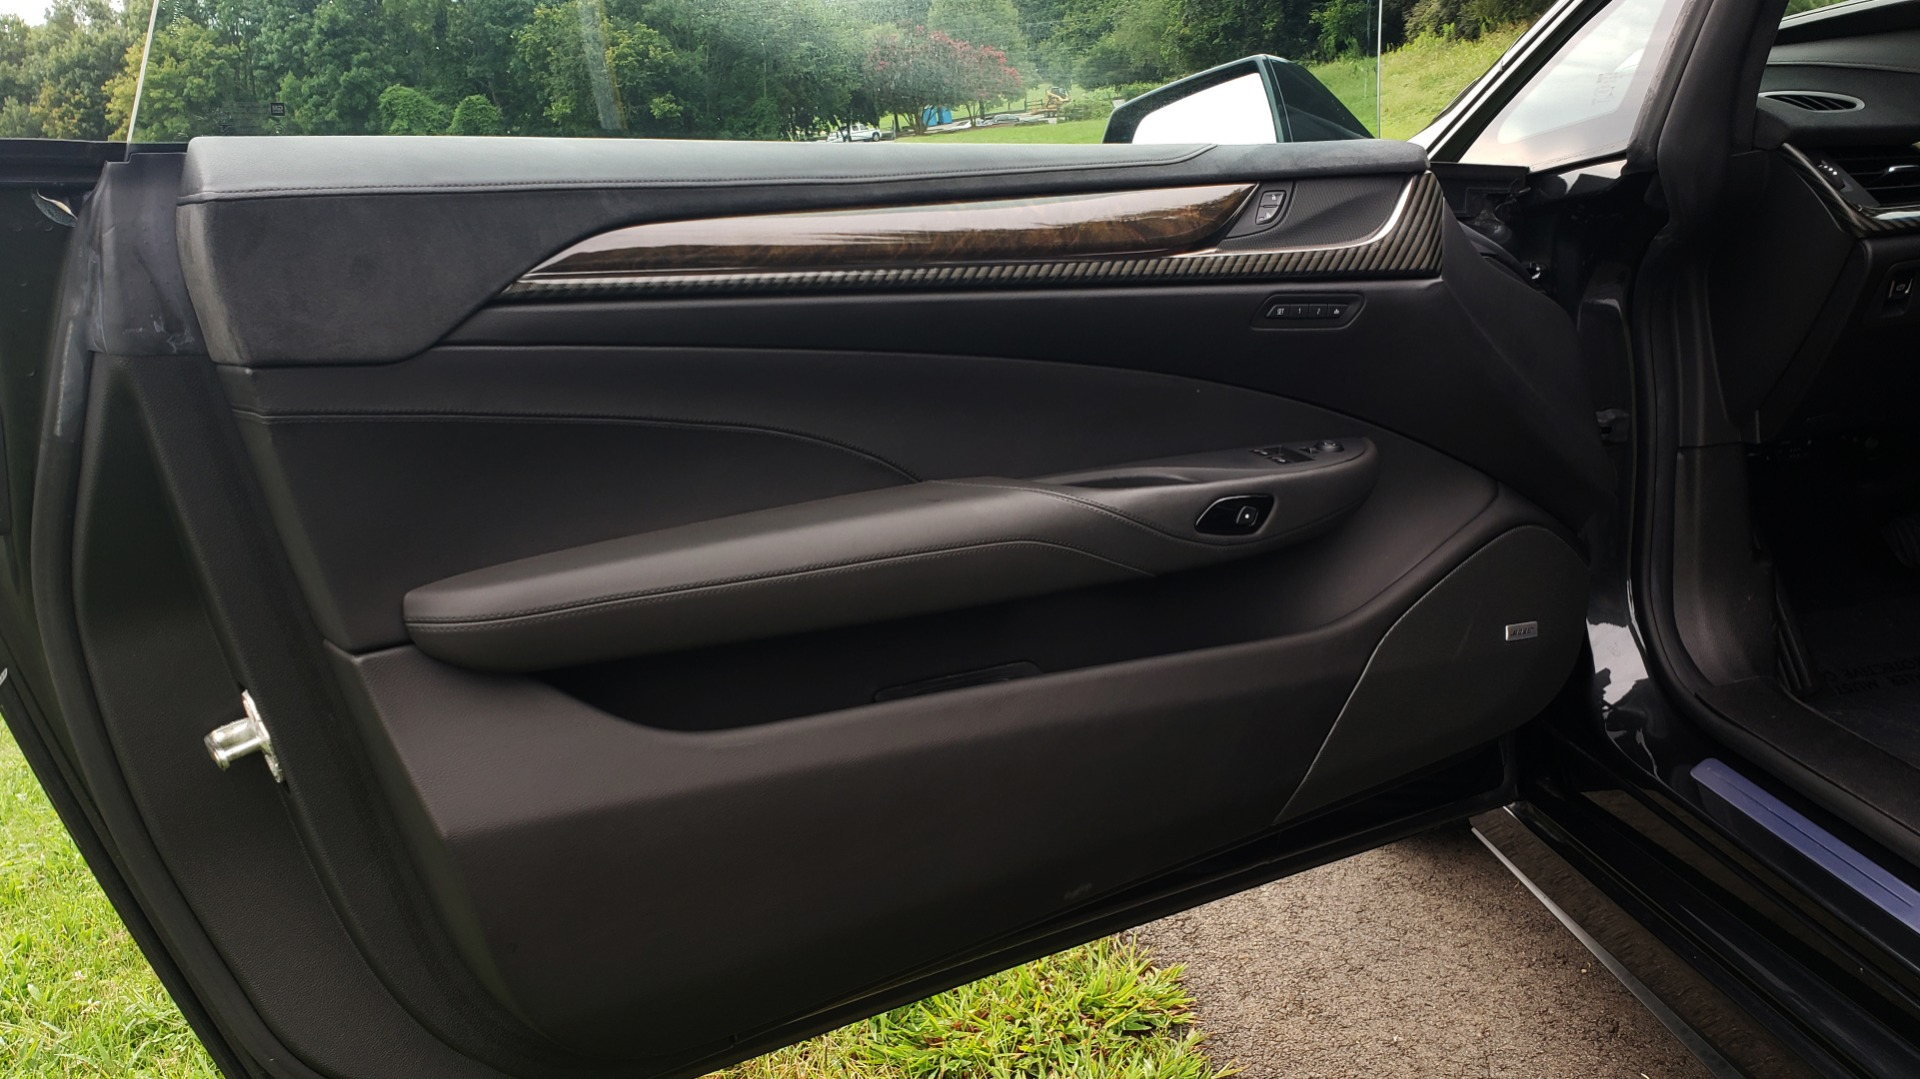 Used 2014 Cadillac ELR 2DR COUPE / HYBRID / NAV / BOSE / HEATED SEATS / REARVIEW for sale $34,000 at Formula Imports in Charlotte NC 28227 23